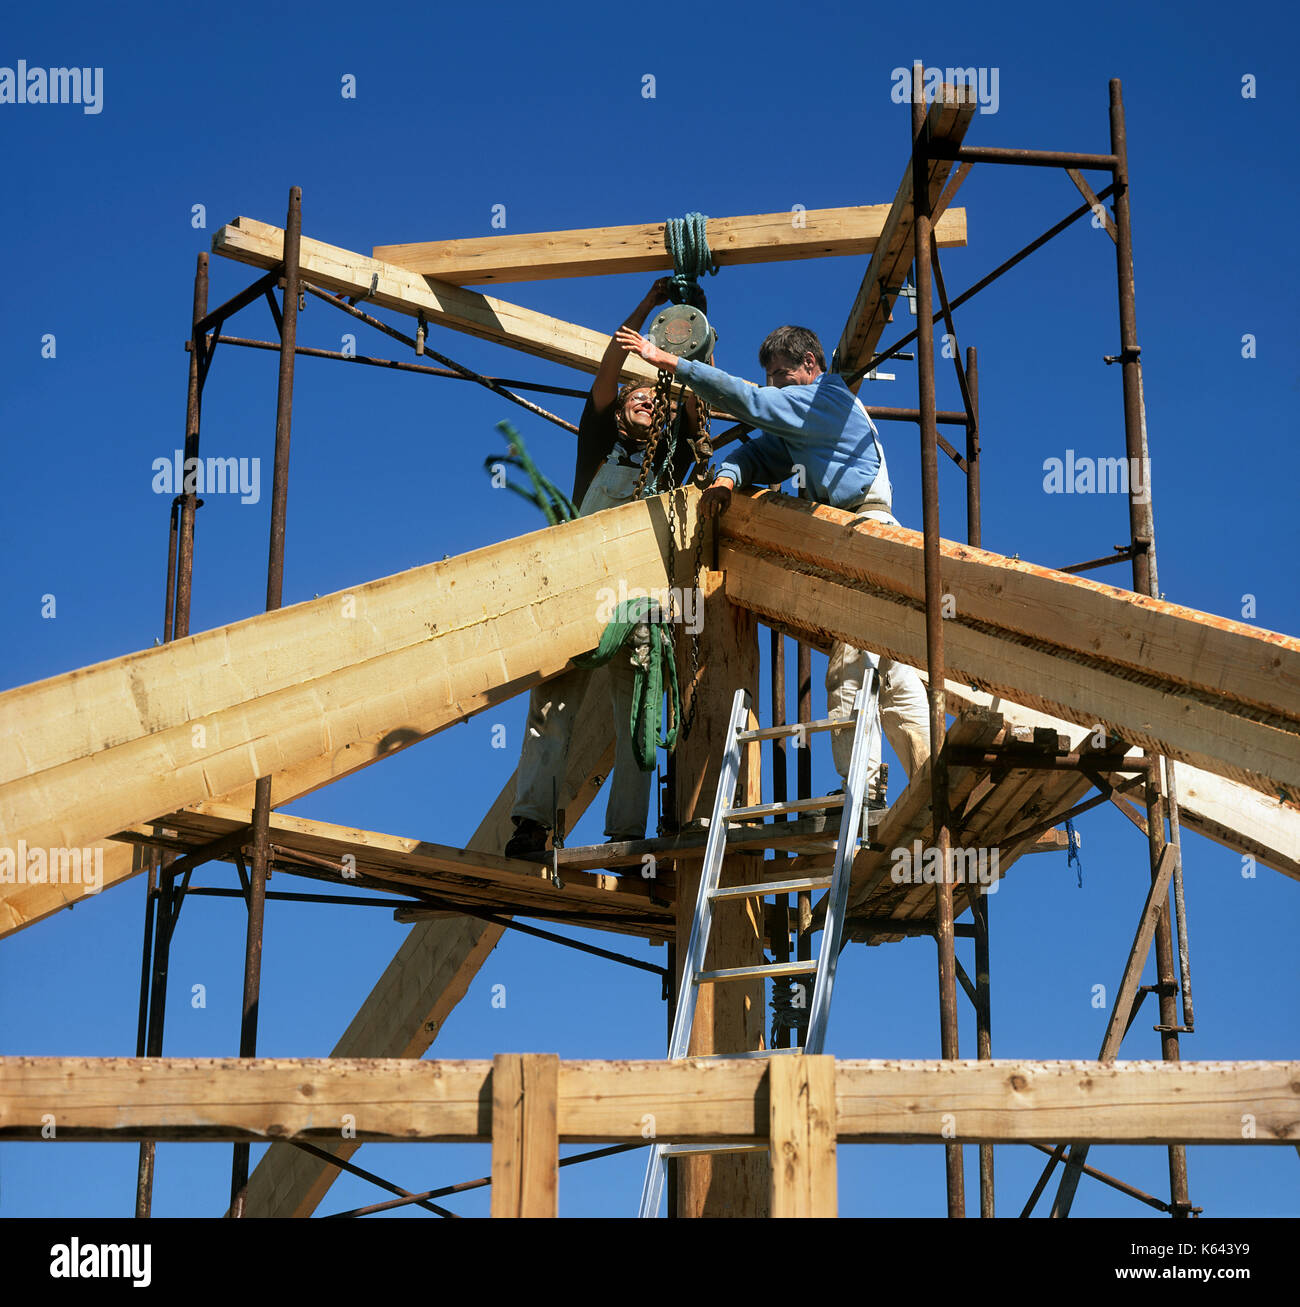 Erecting the wooden frame of a new geodesic dome house at Dyssekilde eco-village, Hundested, Denmark. - Stock Image